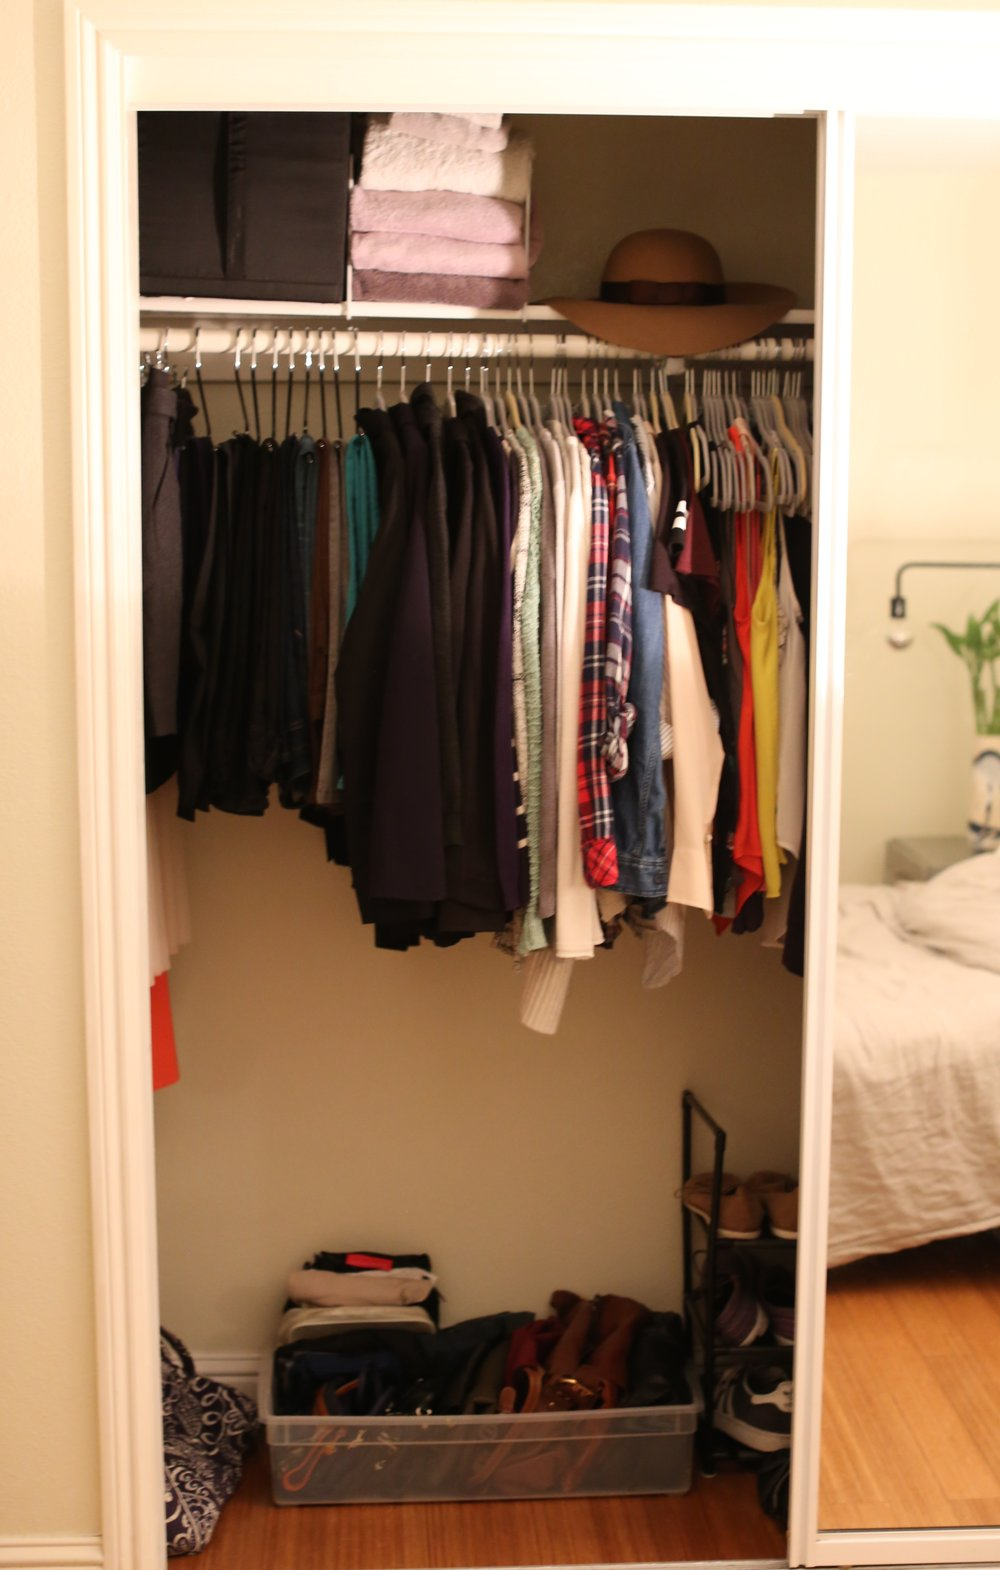 after: a happier closet  #postkonmariclothing